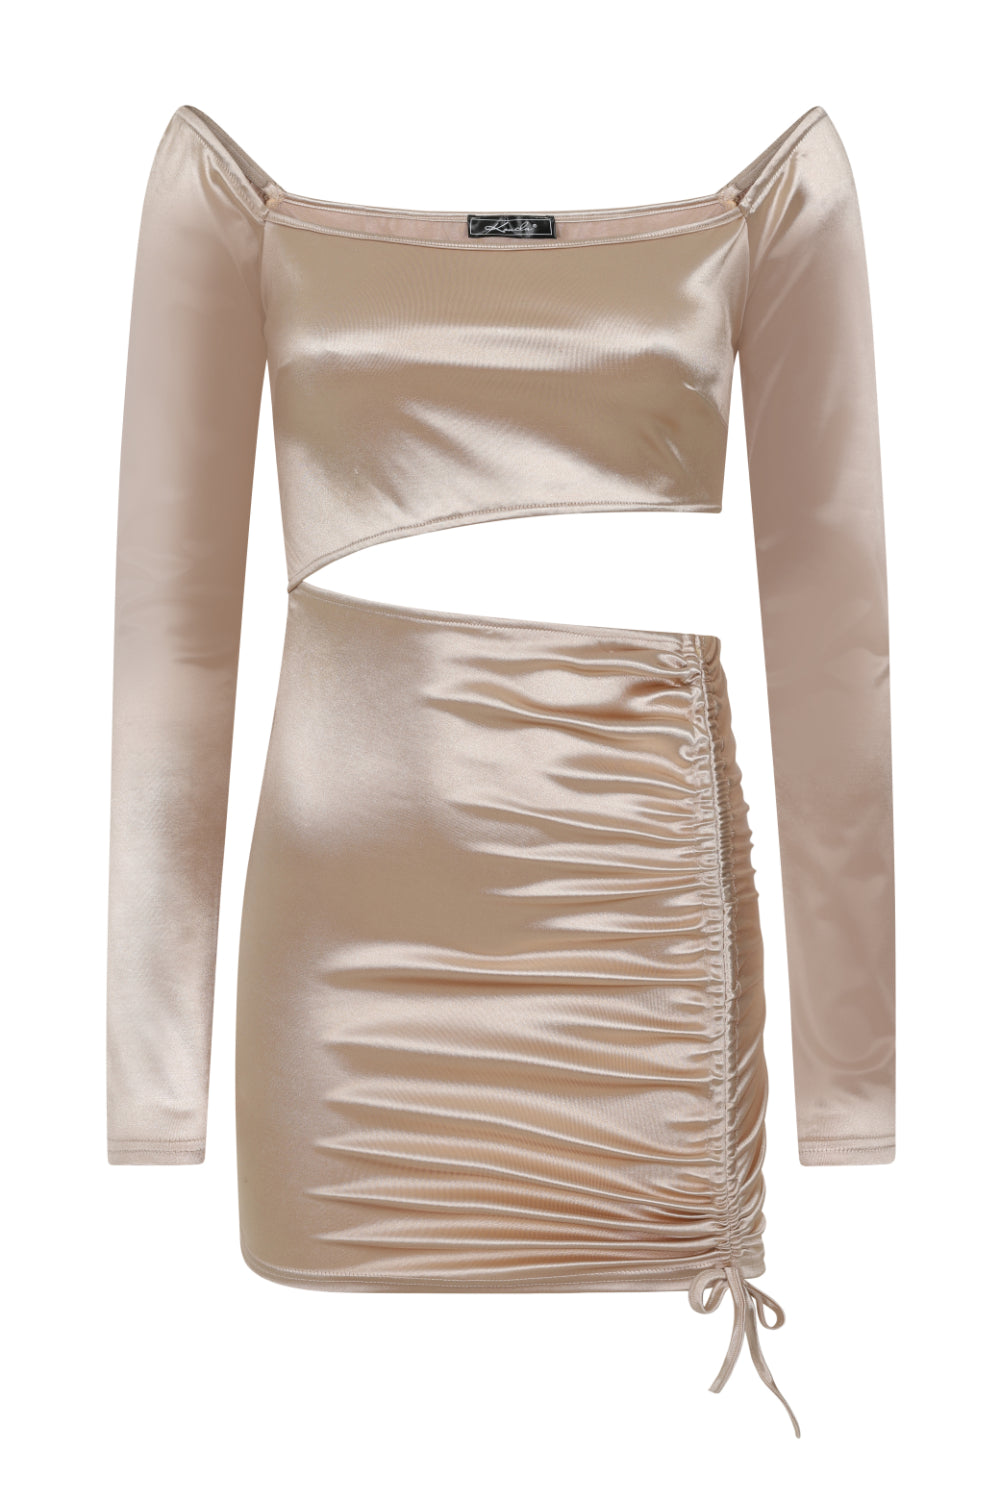 Cut It Out Champagne Slinky Satin Cut Out Ruched Mini Dress